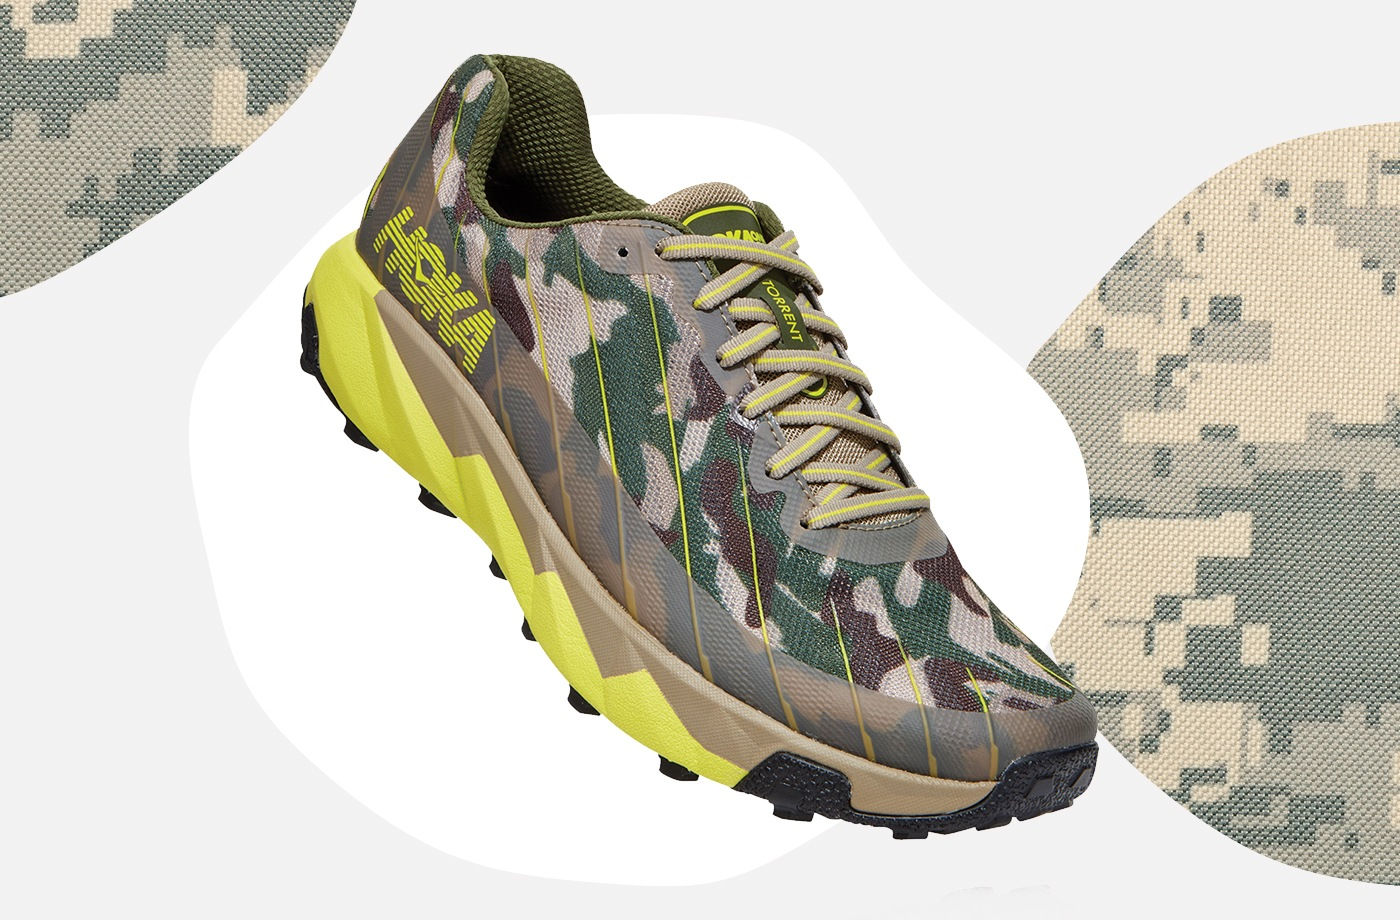 These camo trail sneakers are all I want to wear from here on out